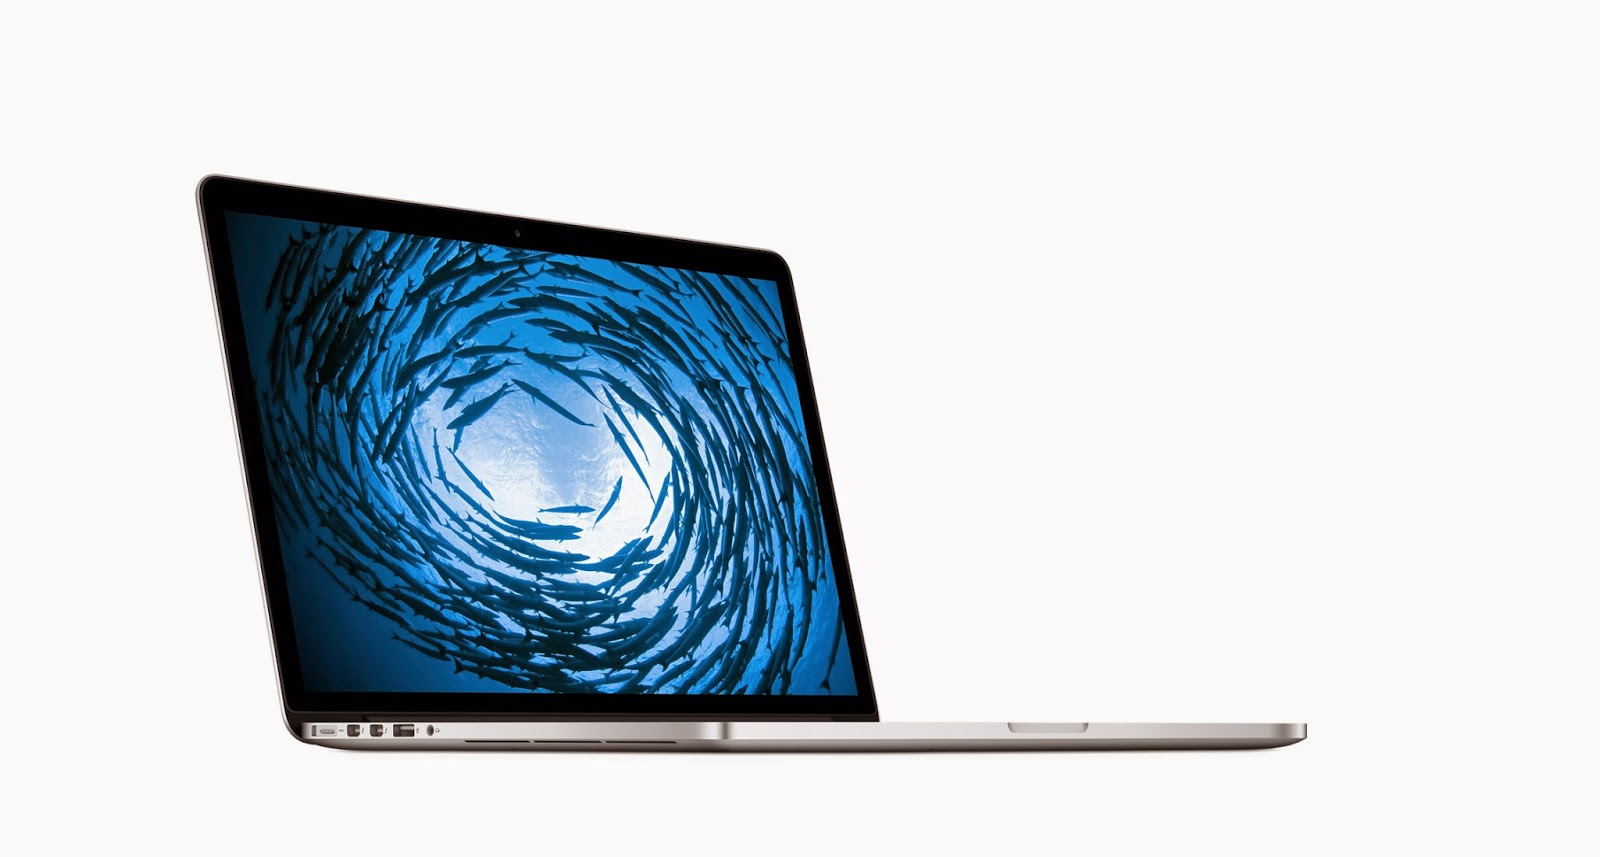 Mac Book pro Retina Display